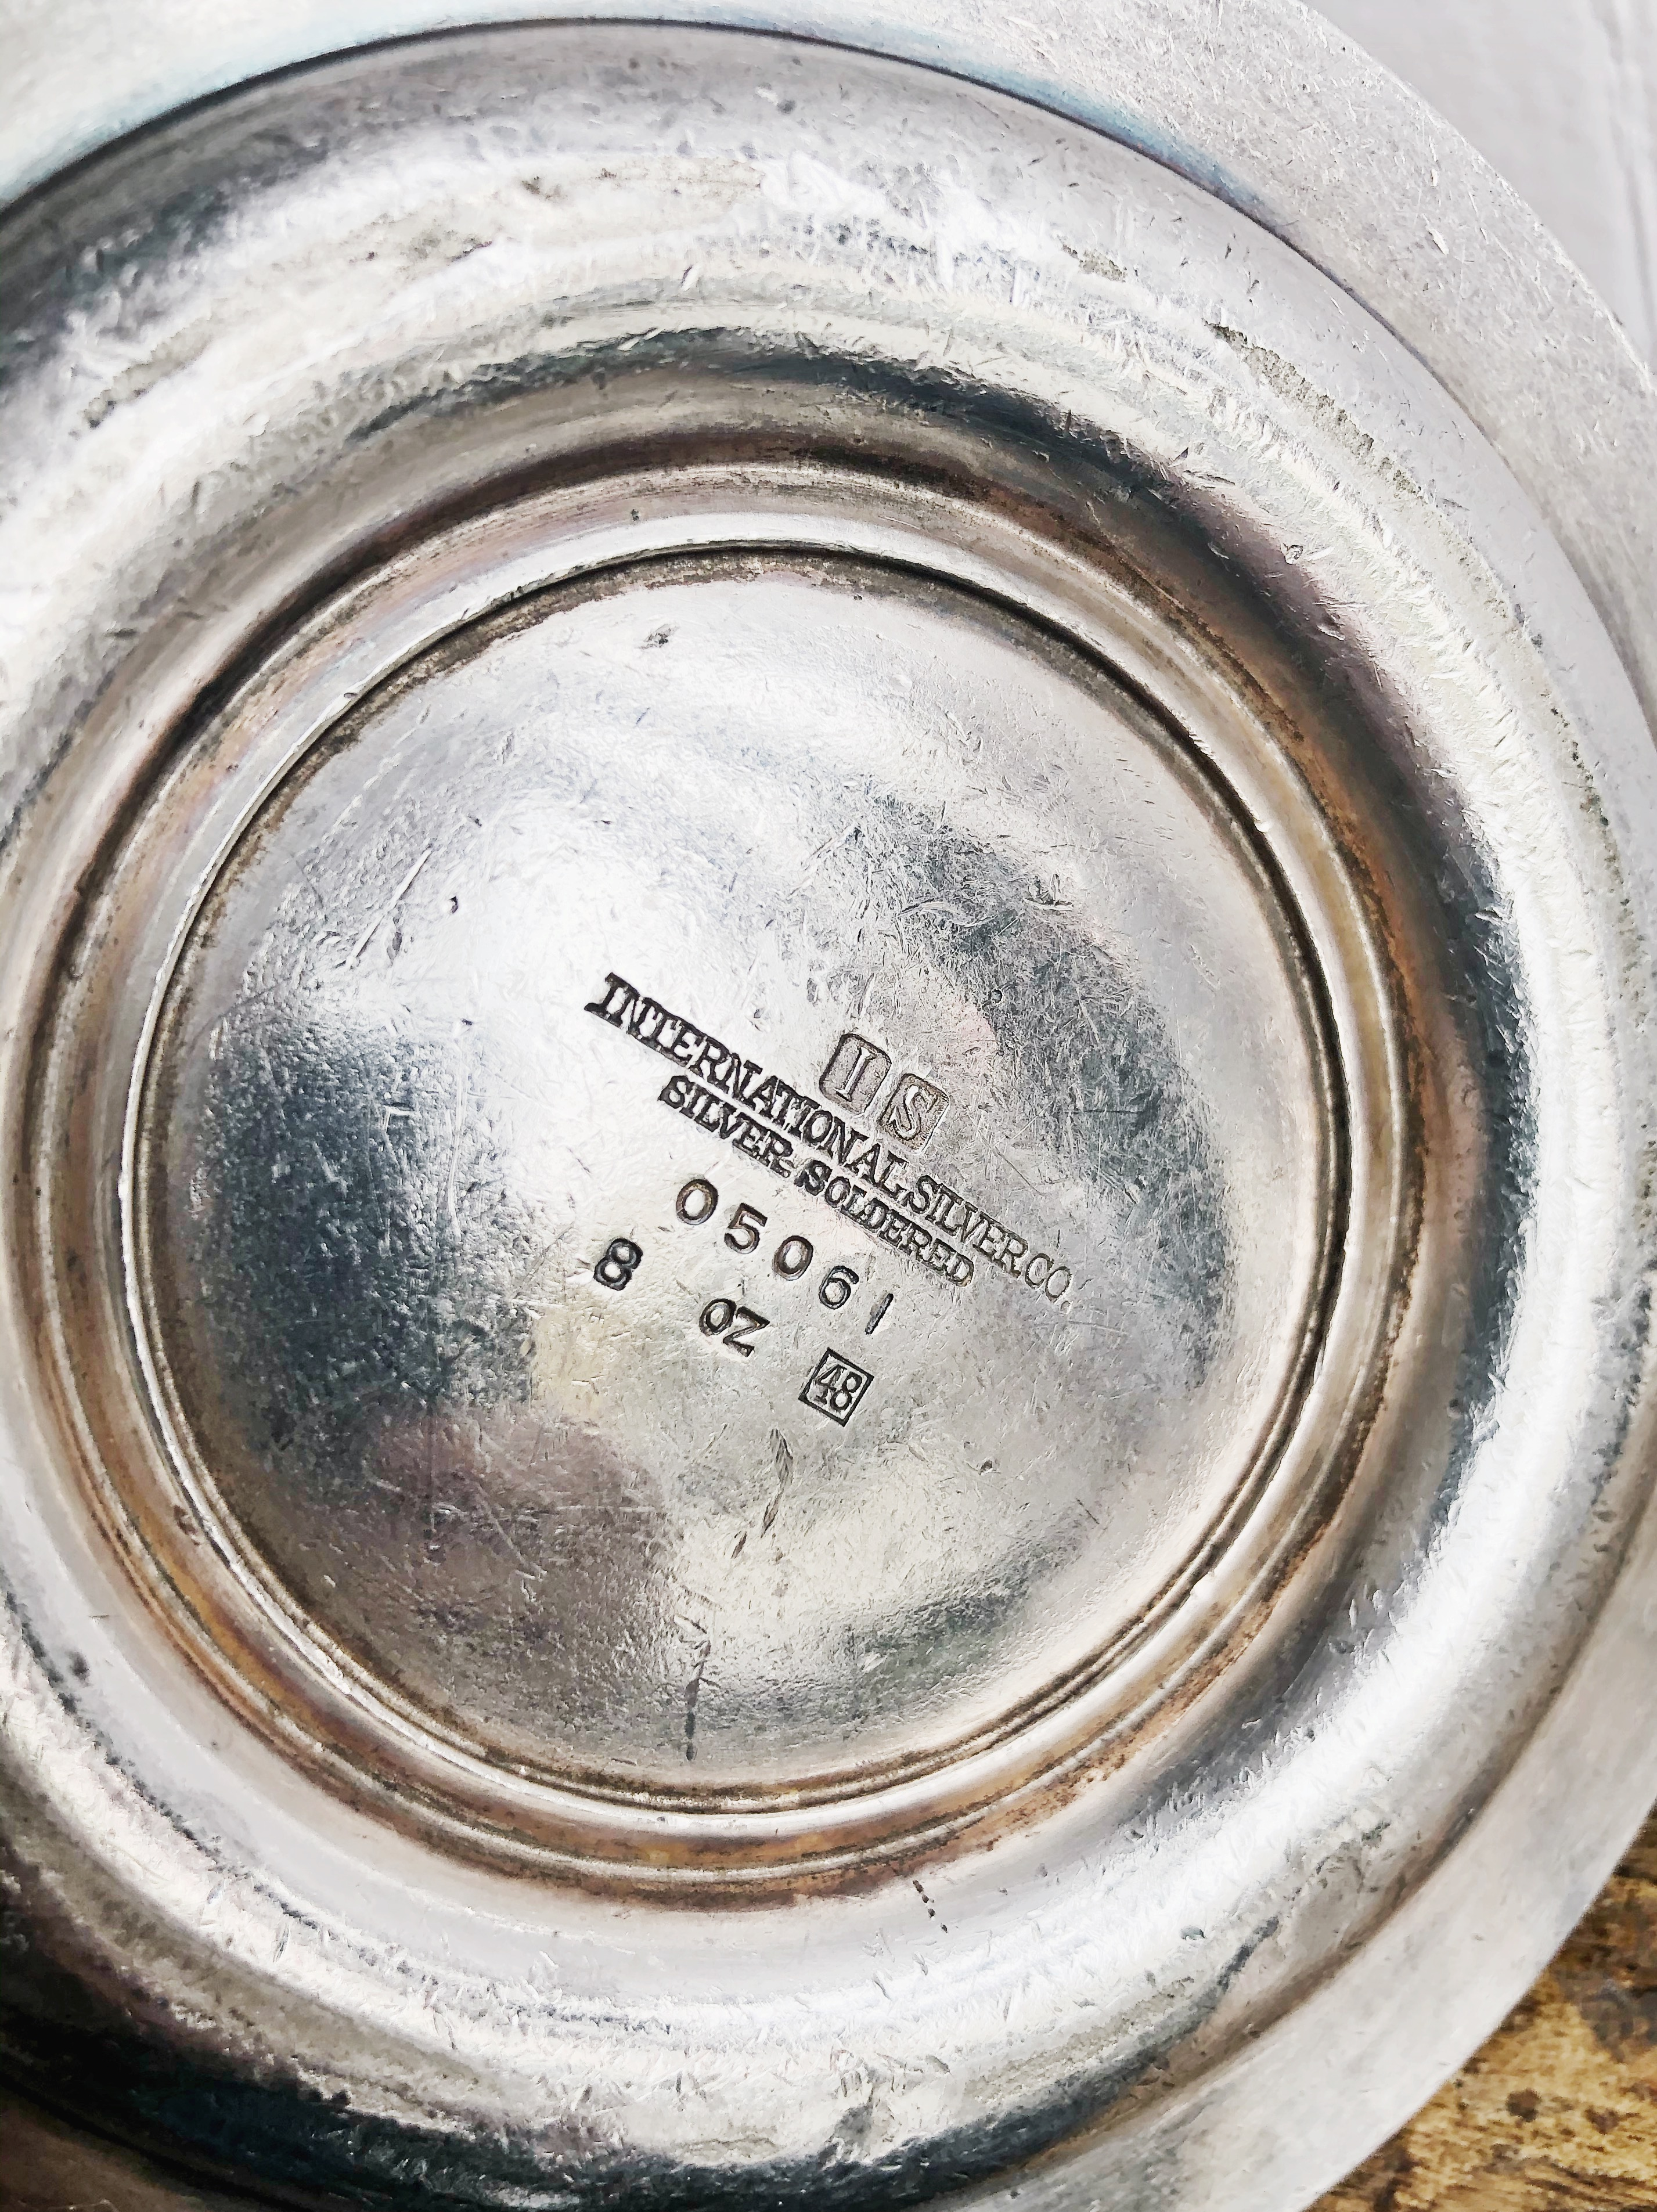 1948 Silver Plated Pennsylvania Railroad Syrup Pitcher